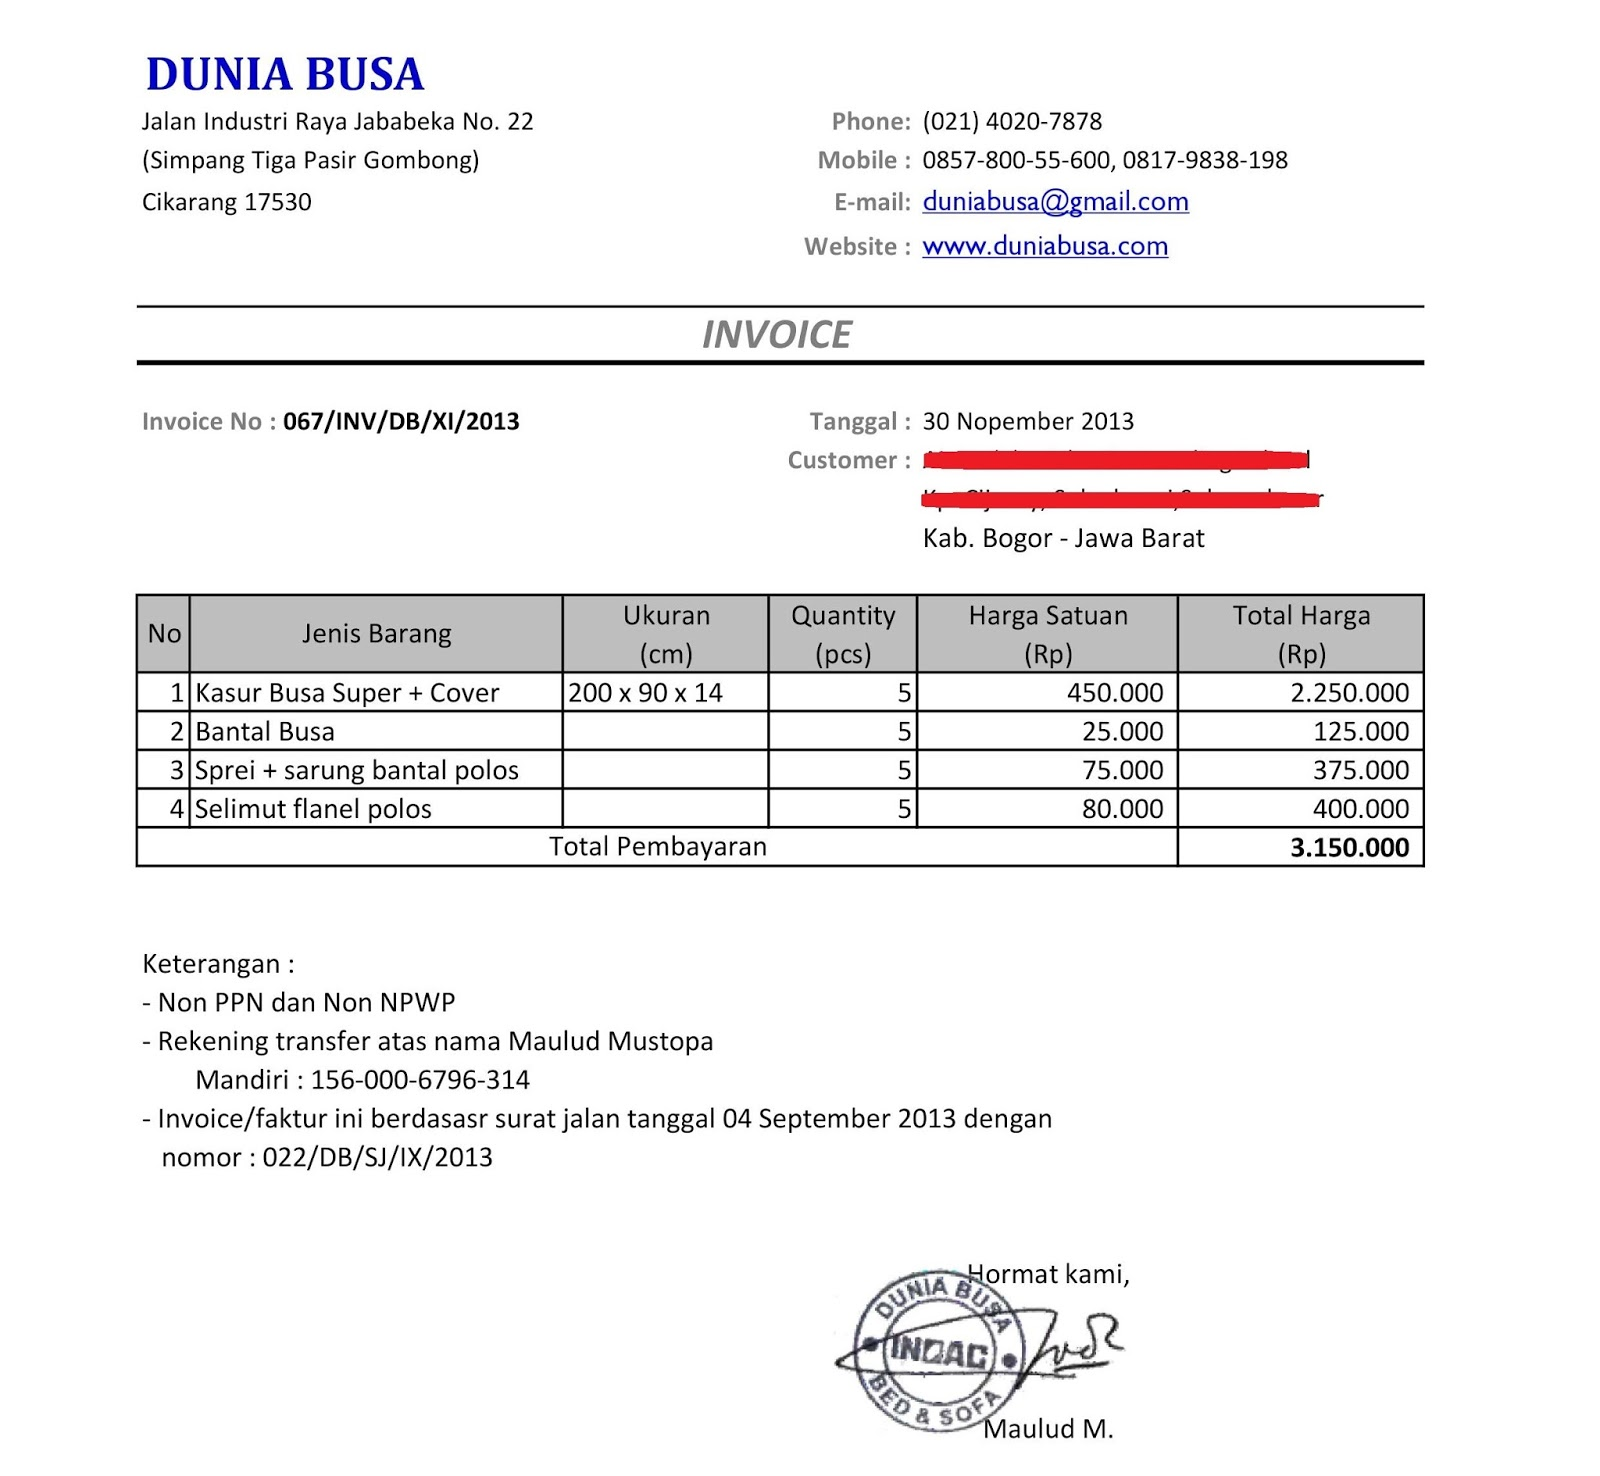 Centralasianshepherdus  Ravishing Free Invoice Online  Create Invoice Online  Invoice Template  With Fair Contoh Format Invoice Atau Surat Tagihan  Brankas Arsip  Free Invoice Online With Adorable Free Work Invoice Template Also How To Get Invoice Price For New Car In Addition What Is Msrp And Invoice And Invoice Template For Consulting Services As Well As Online Invoices Template Free Additionally Customer Invoices From Sklepco With Centralasianshepherdus  Fair Free Invoice Online  Create Invoice Online  Invoice Template  With Adorable Contoh Format Invoice Atau Surat Tagihan  Brankas Arsip  Free Invoice Online And Ravishing Free Work Invoice Template Also How To Get Invoice Price For New Car In Addition What Is Msrp And Invoice From Sklepco